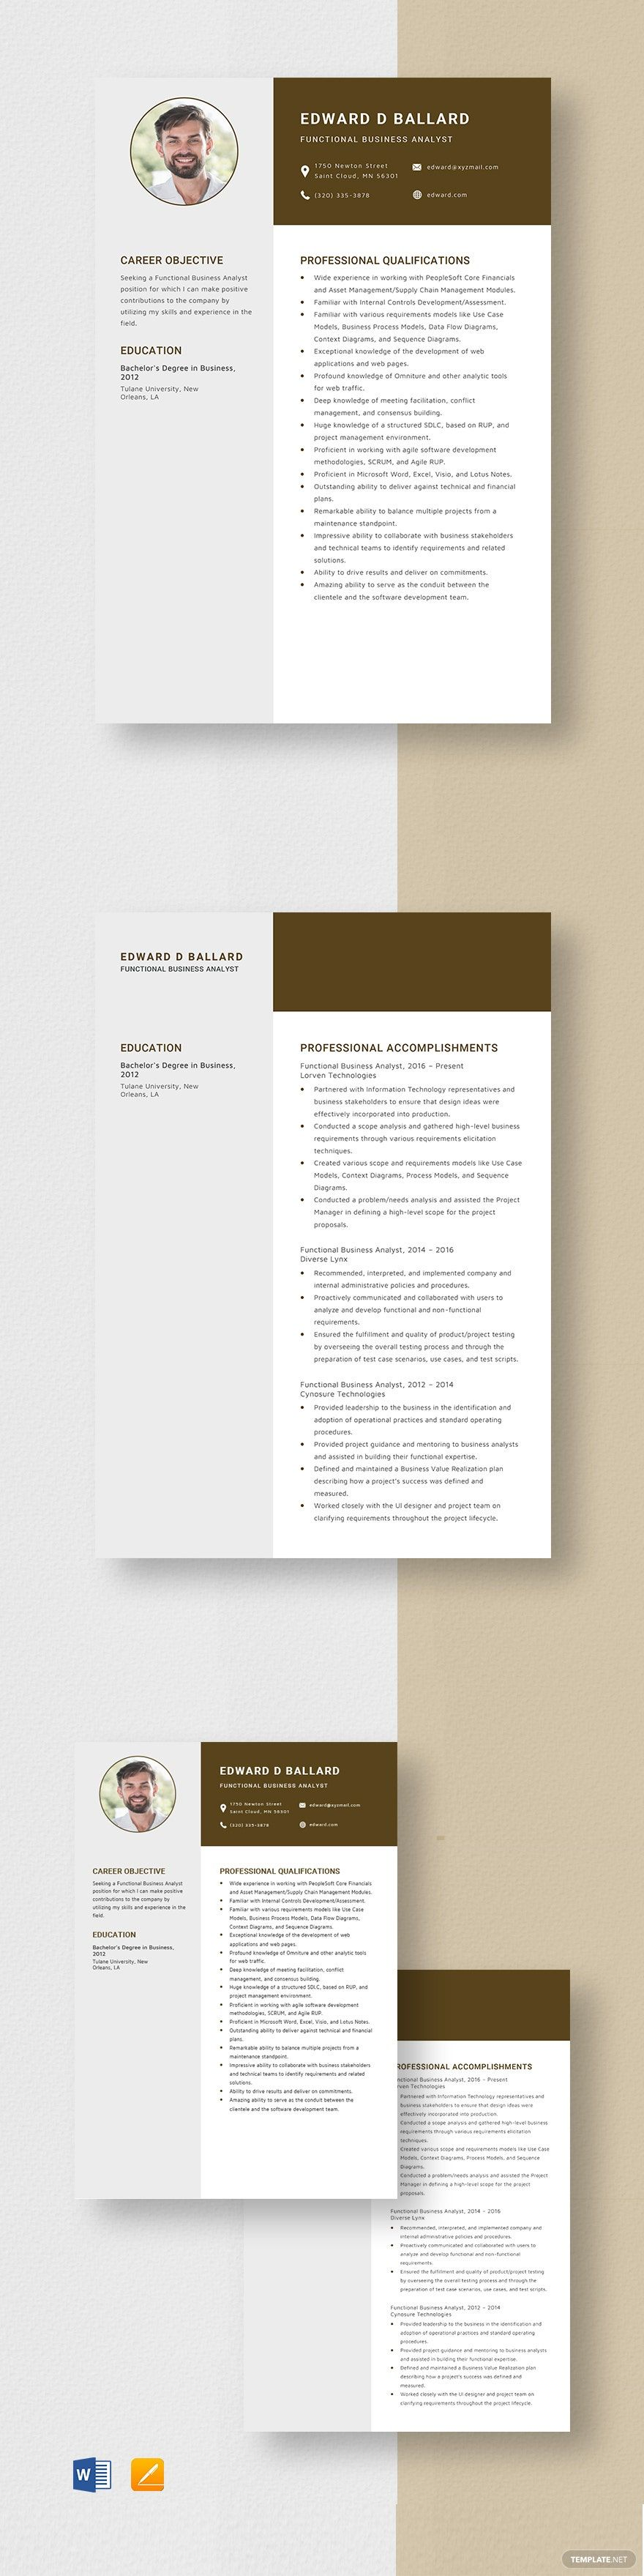 Functional Business Analyst Resume Template in 2020